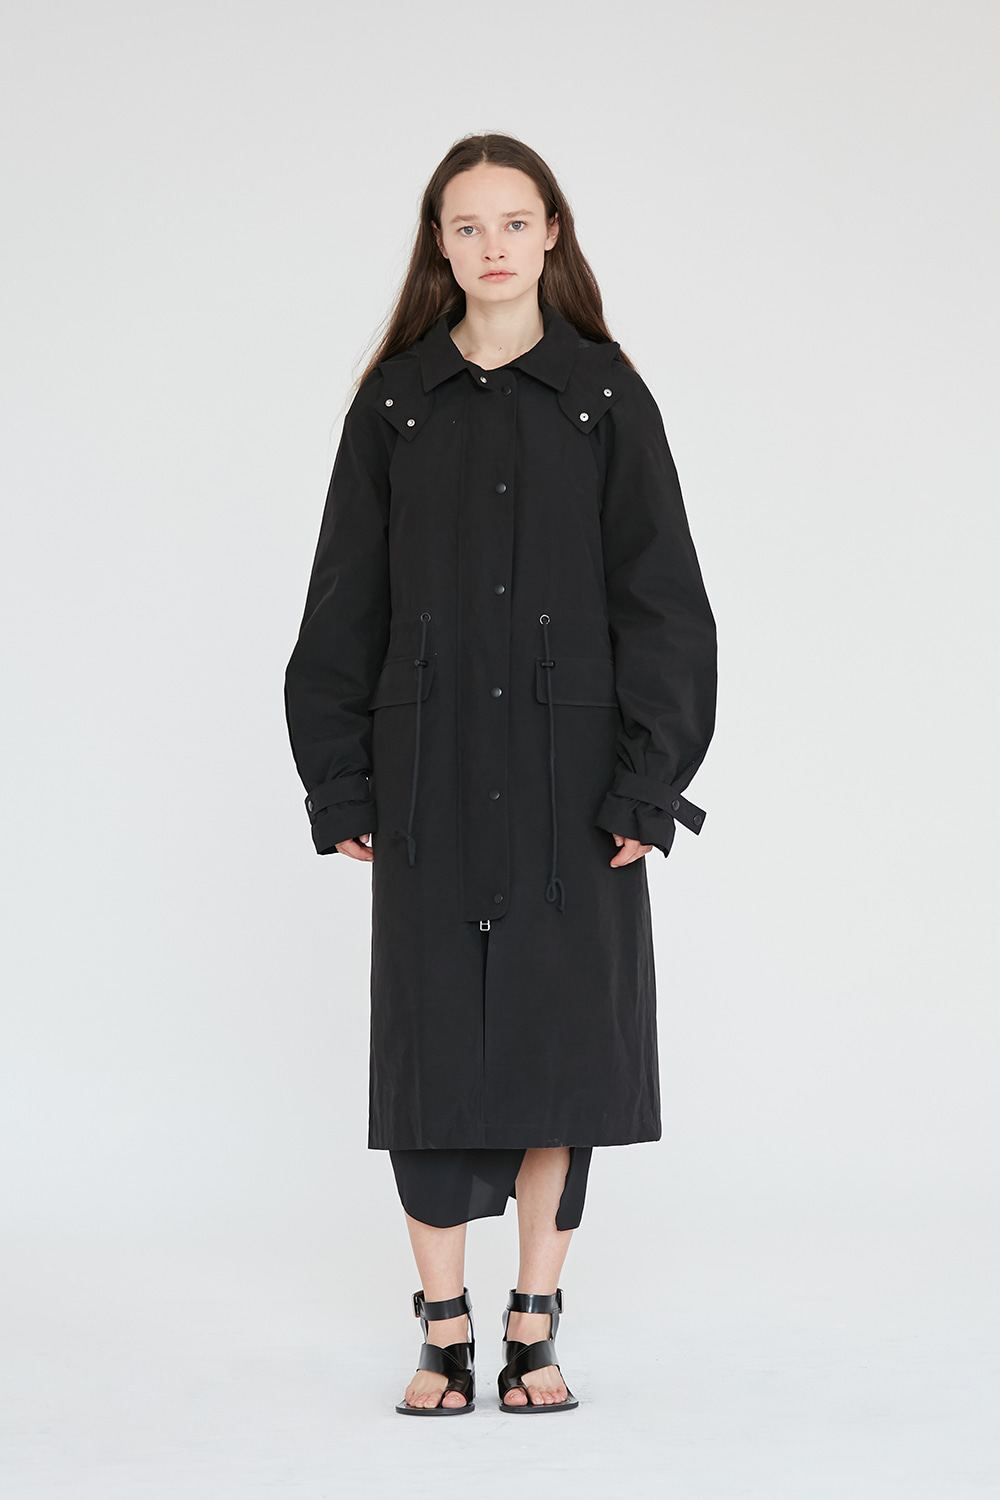 Hooded Coat Women [Black]